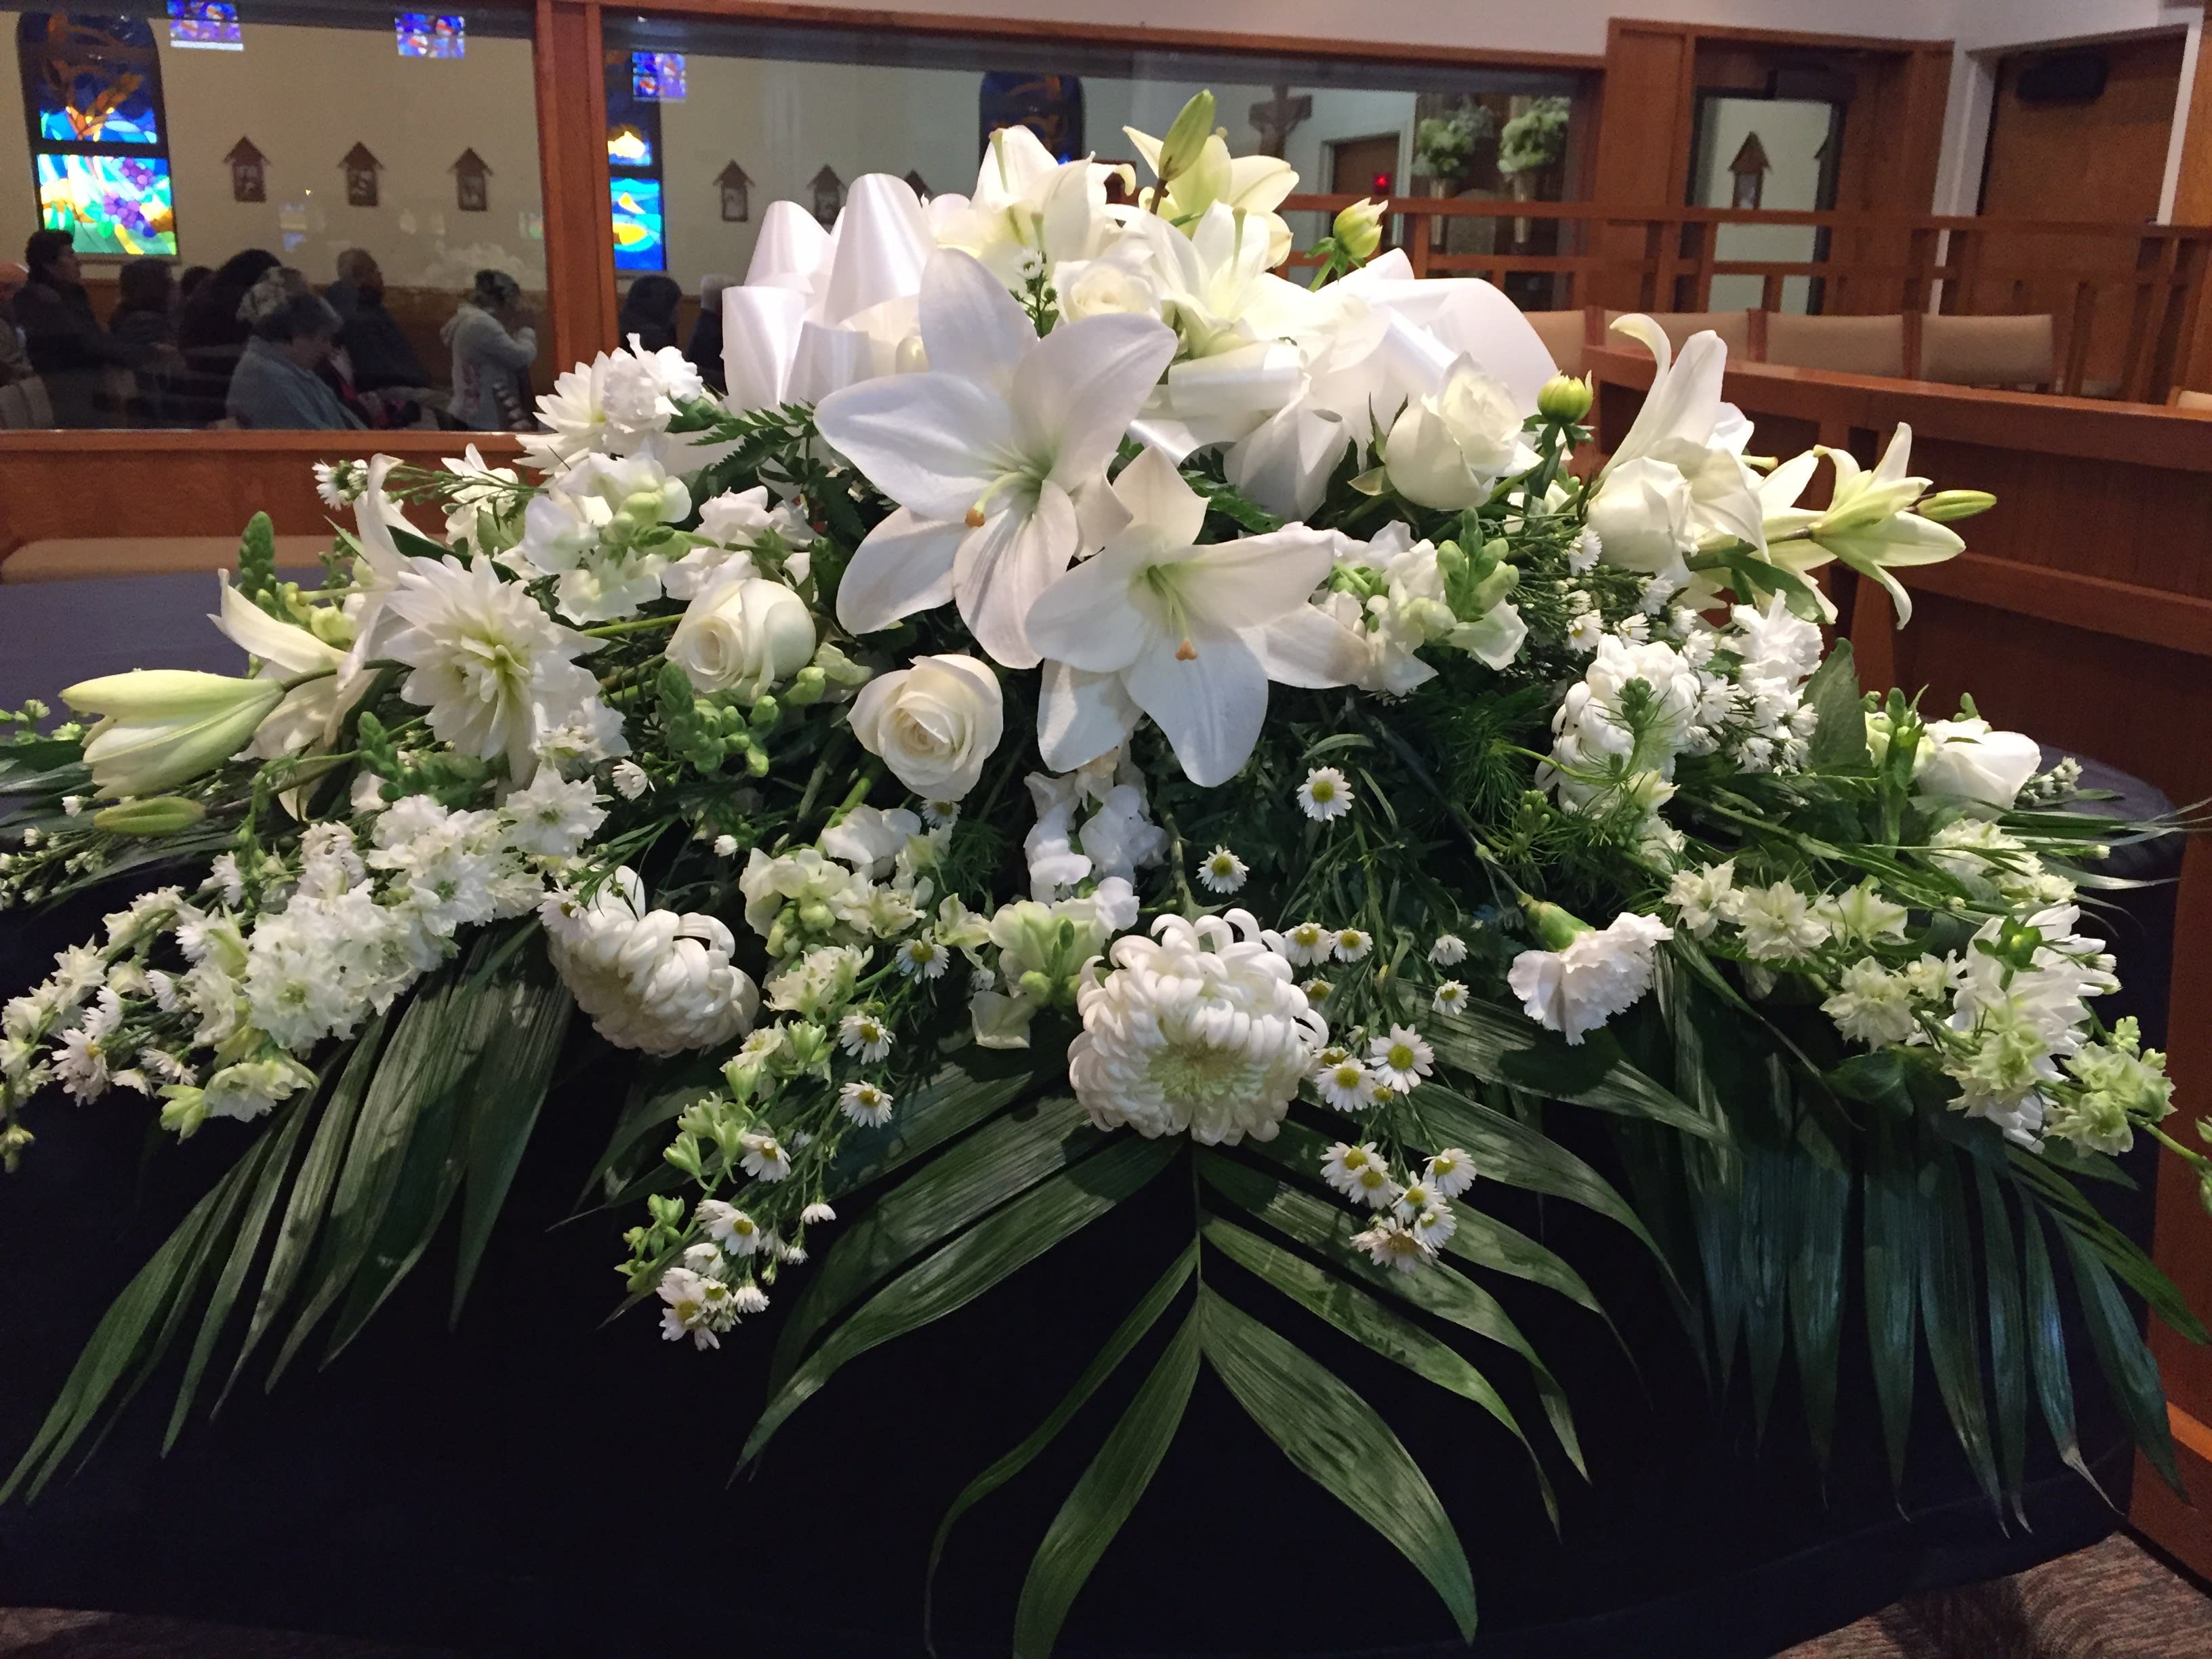 White Casket Spray Funeral In Santa Clarita Ca Flower Finesse,Painting And Decorating Jobs Spain